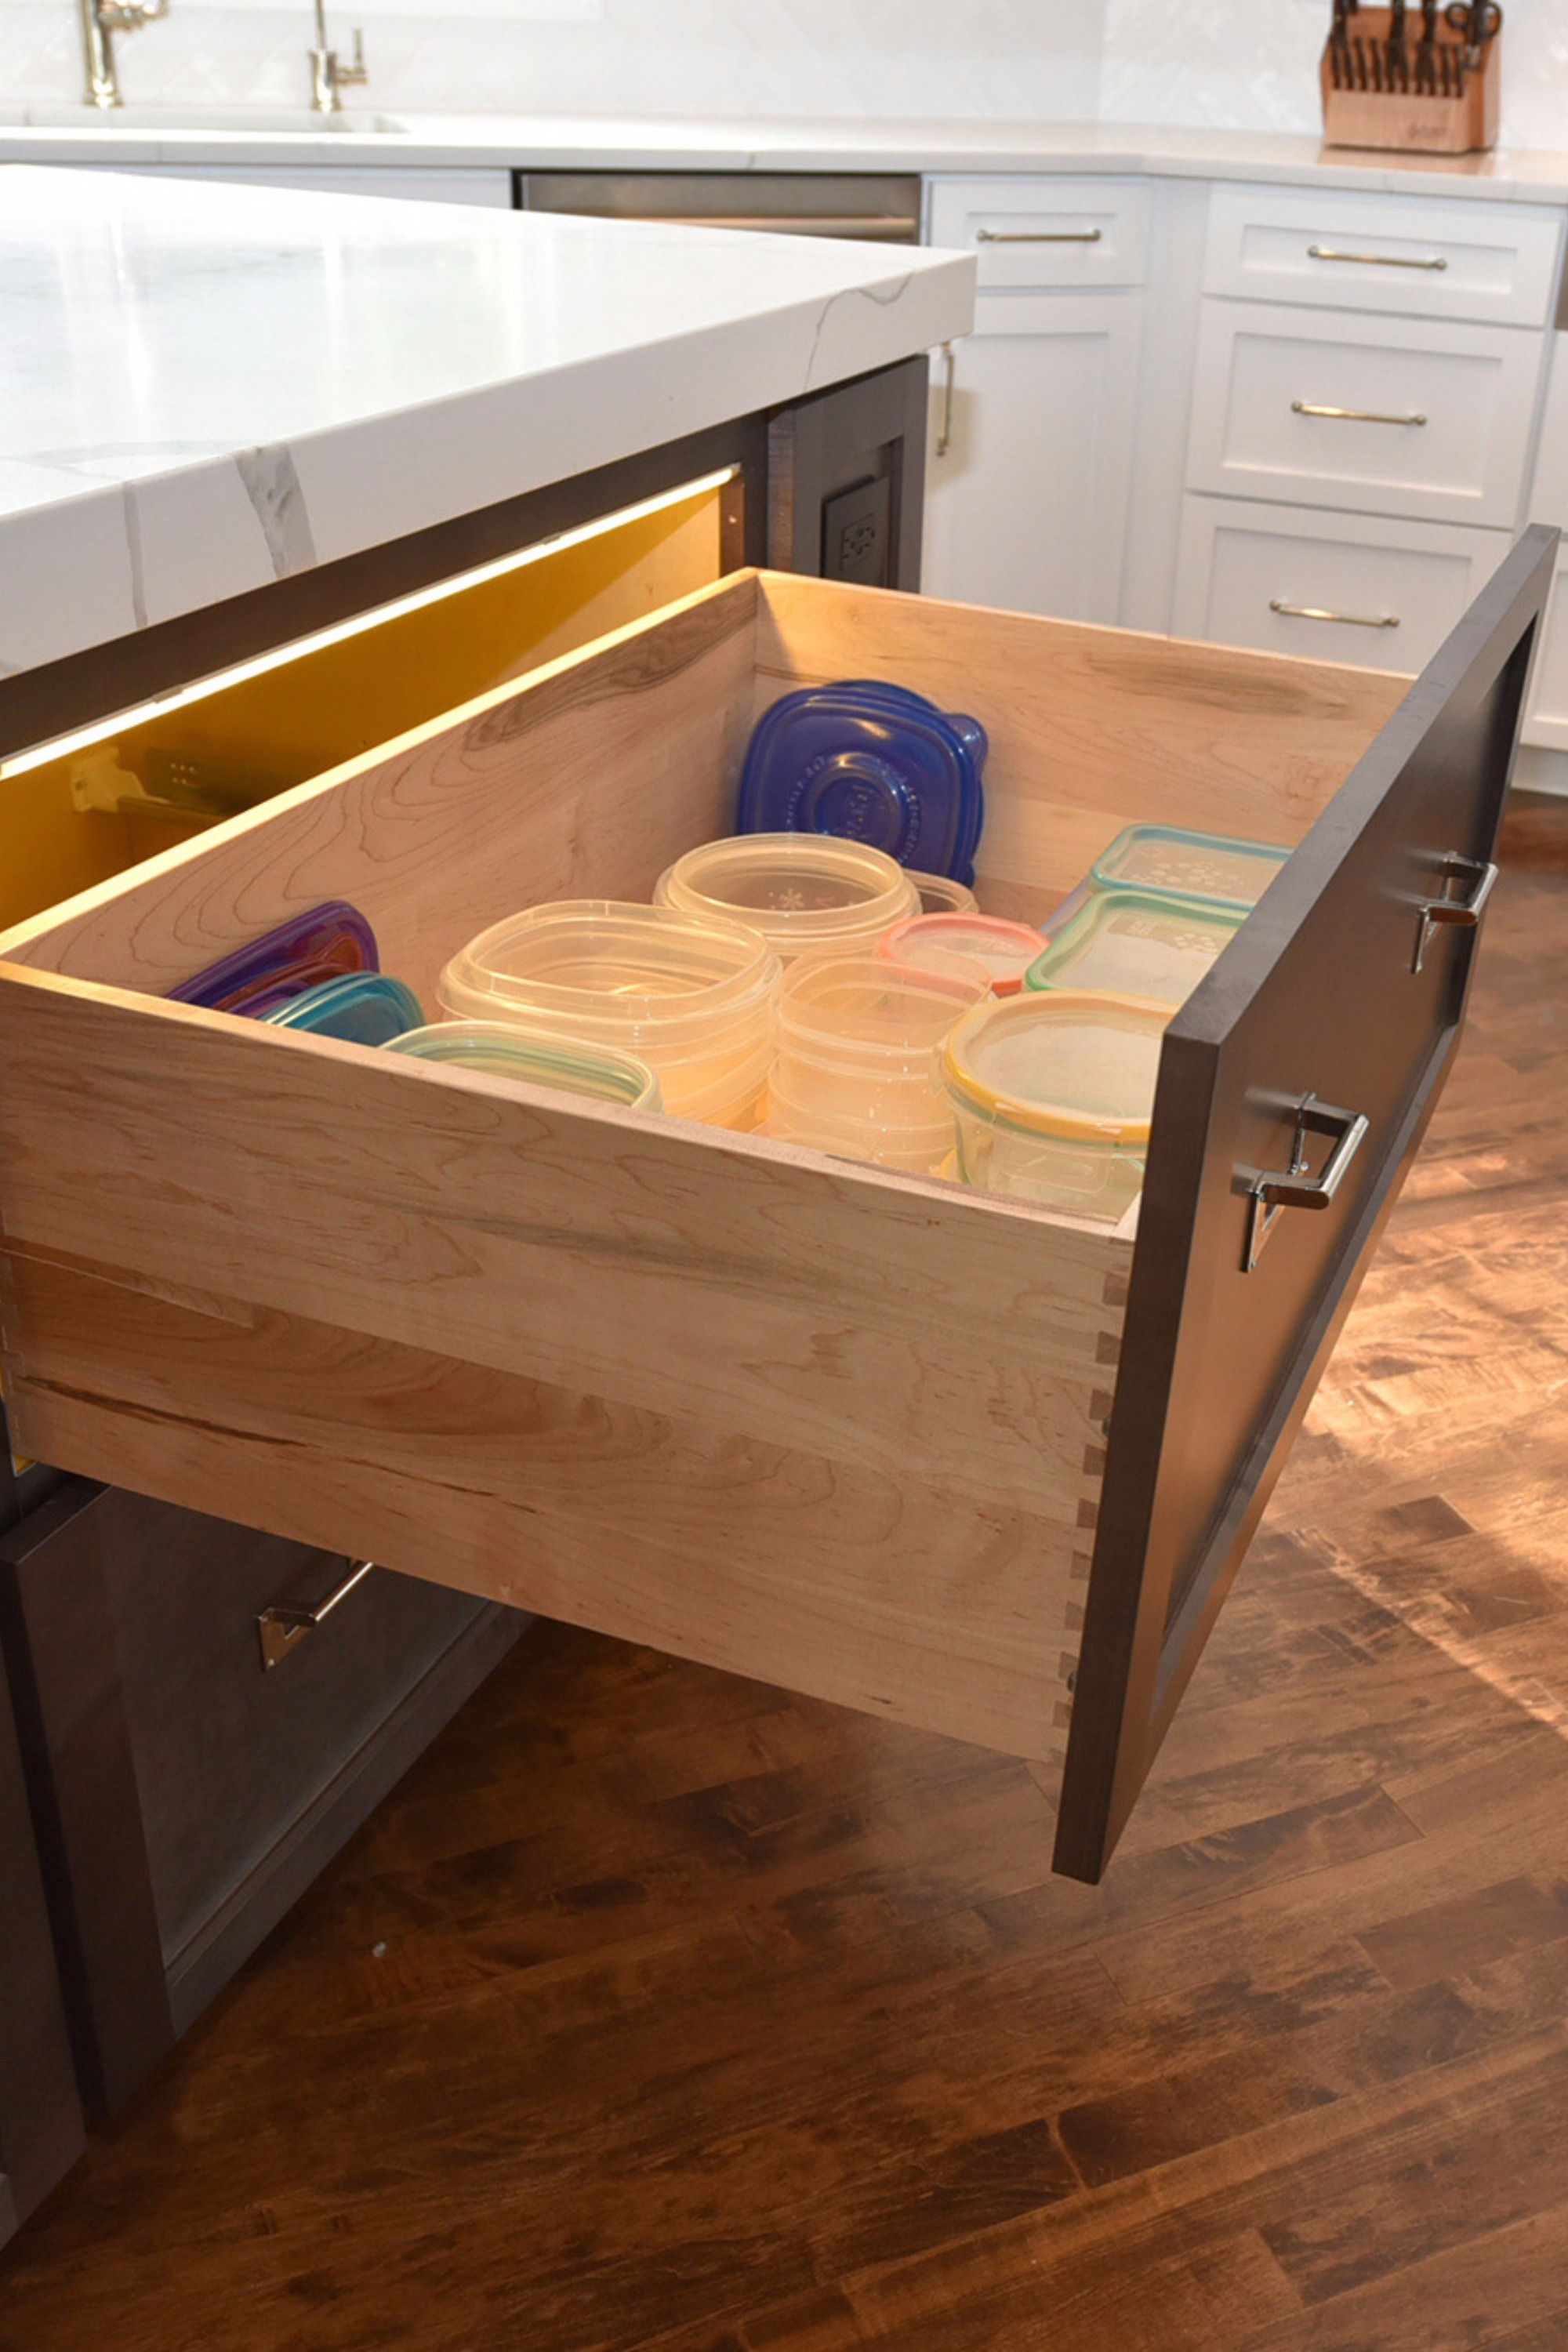 Two Drawer Base With A 10 High Dovetail Drawer Box And Look At This Clever Little Light Fixture The Homeowne Online Kitchen Cabinets Cabinets Online Cabinet